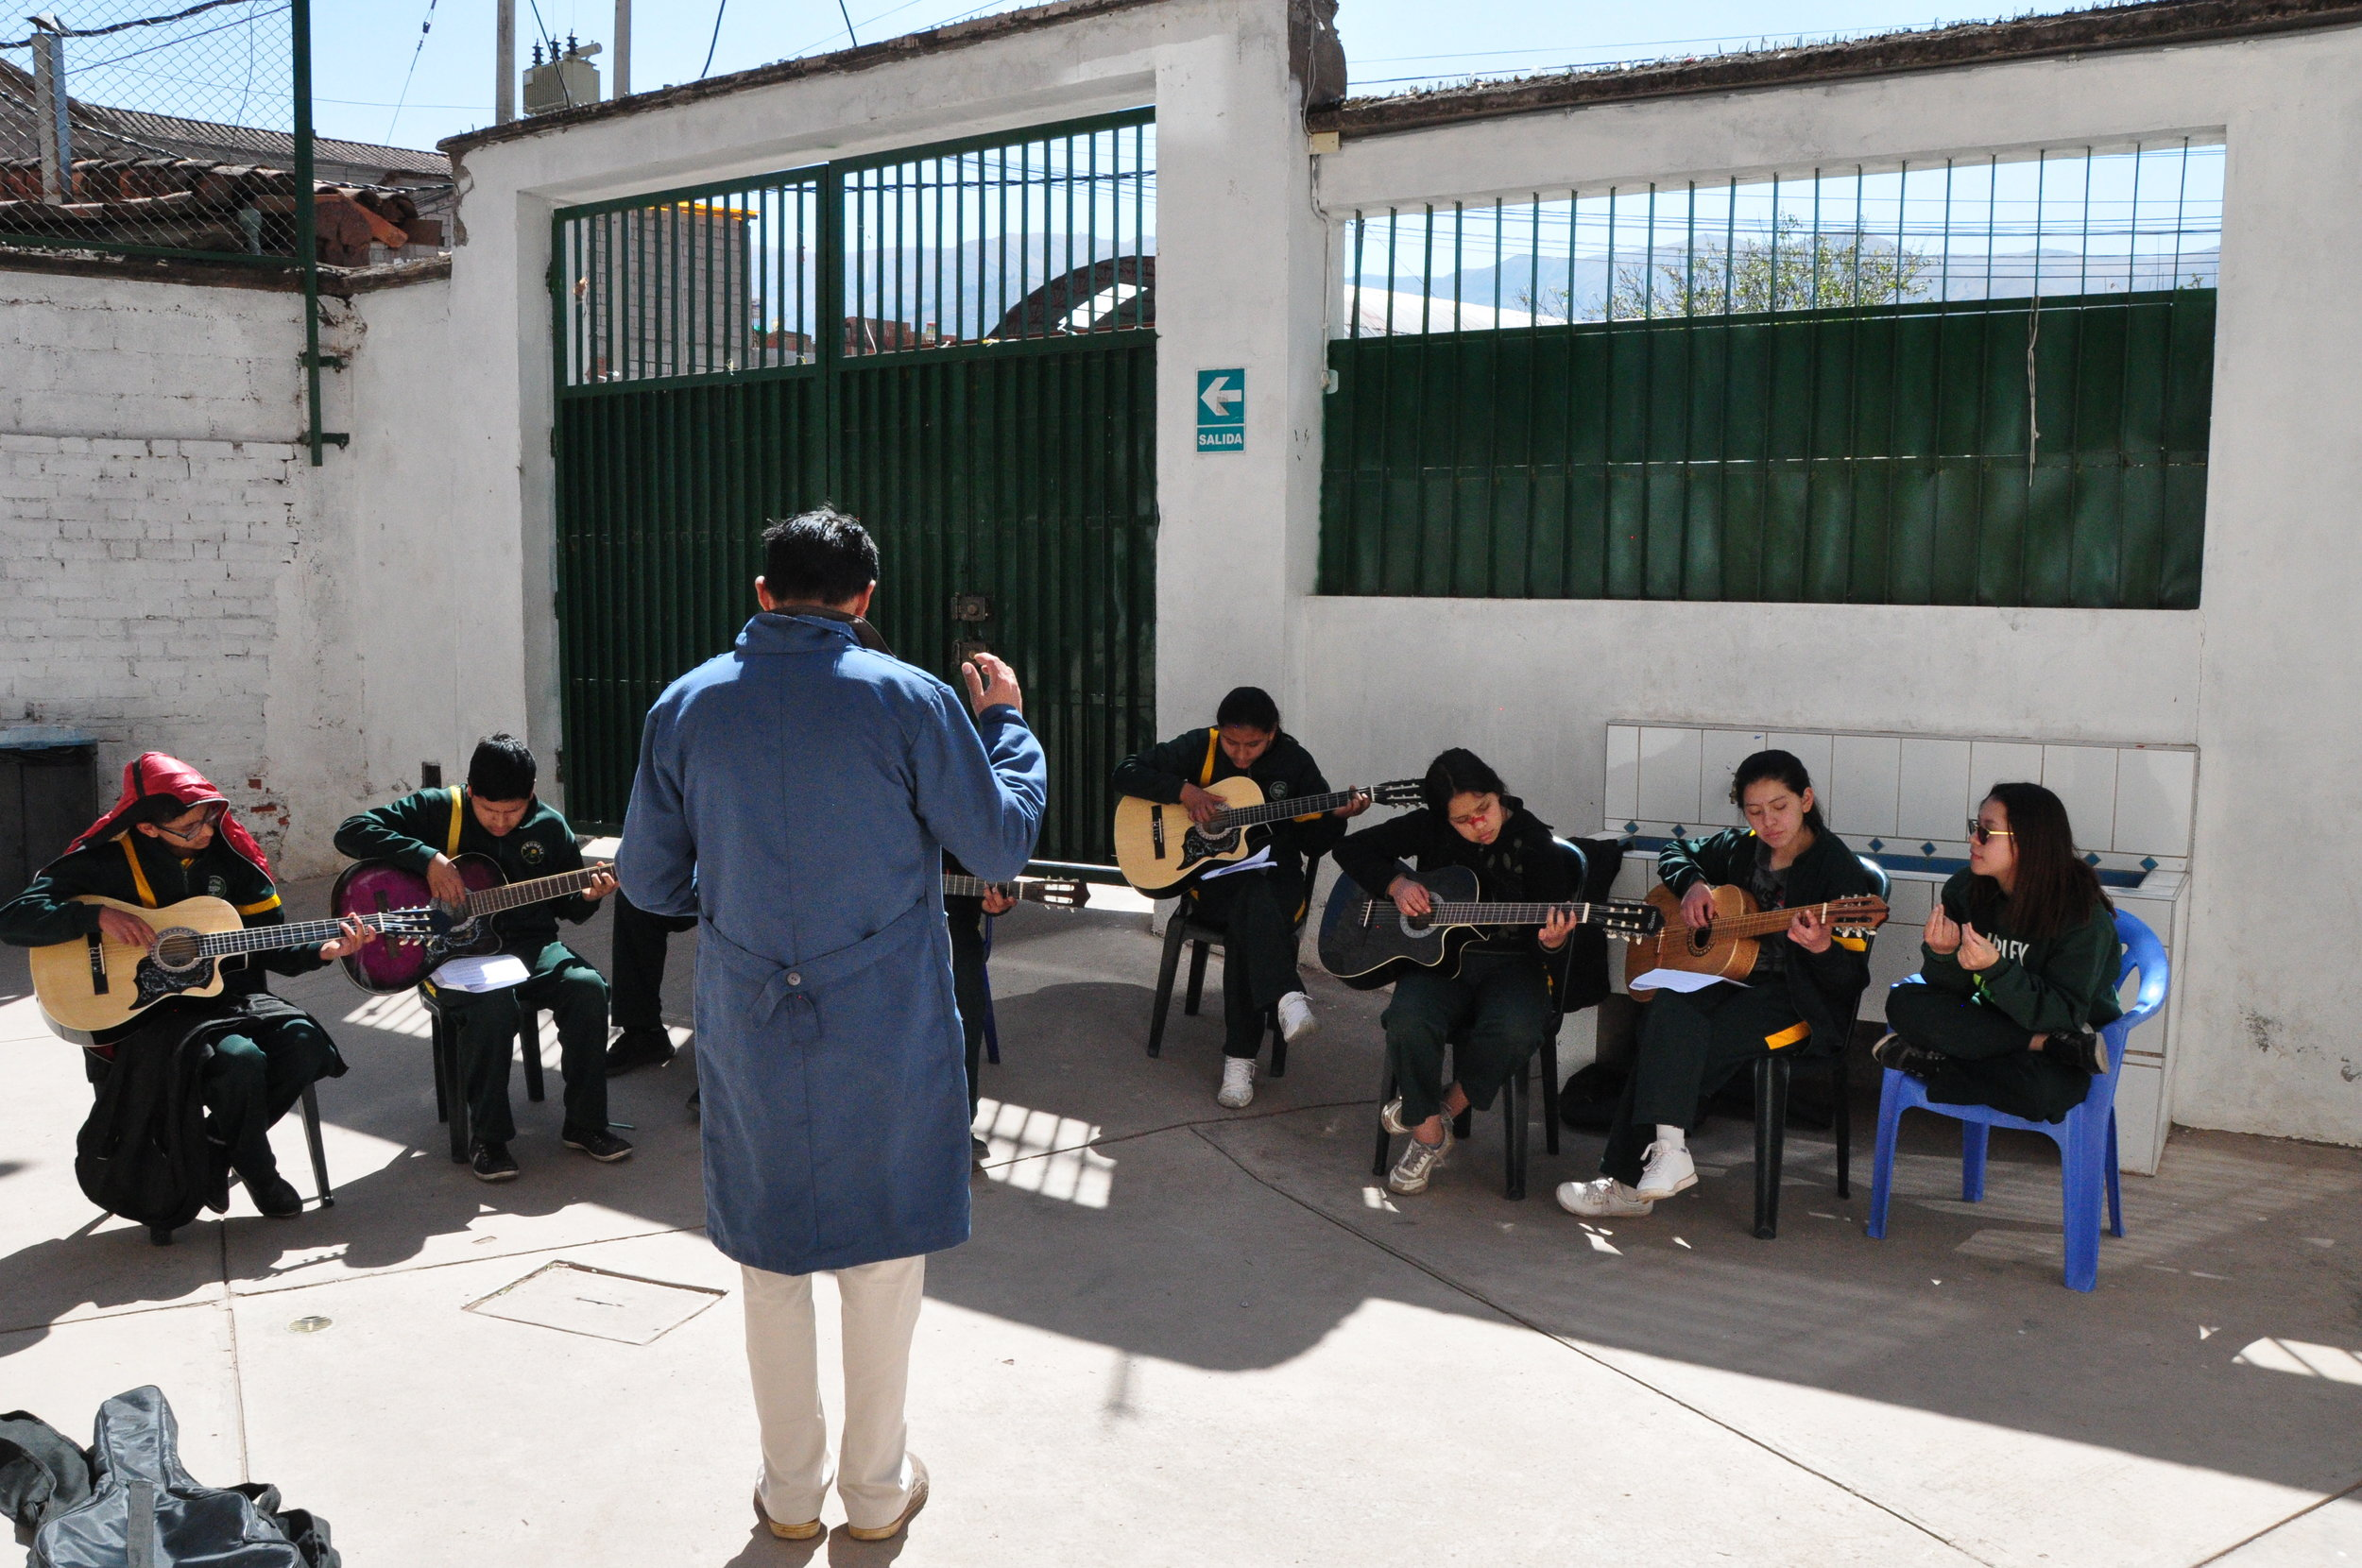 Guitar class held outside due to limited classroom space